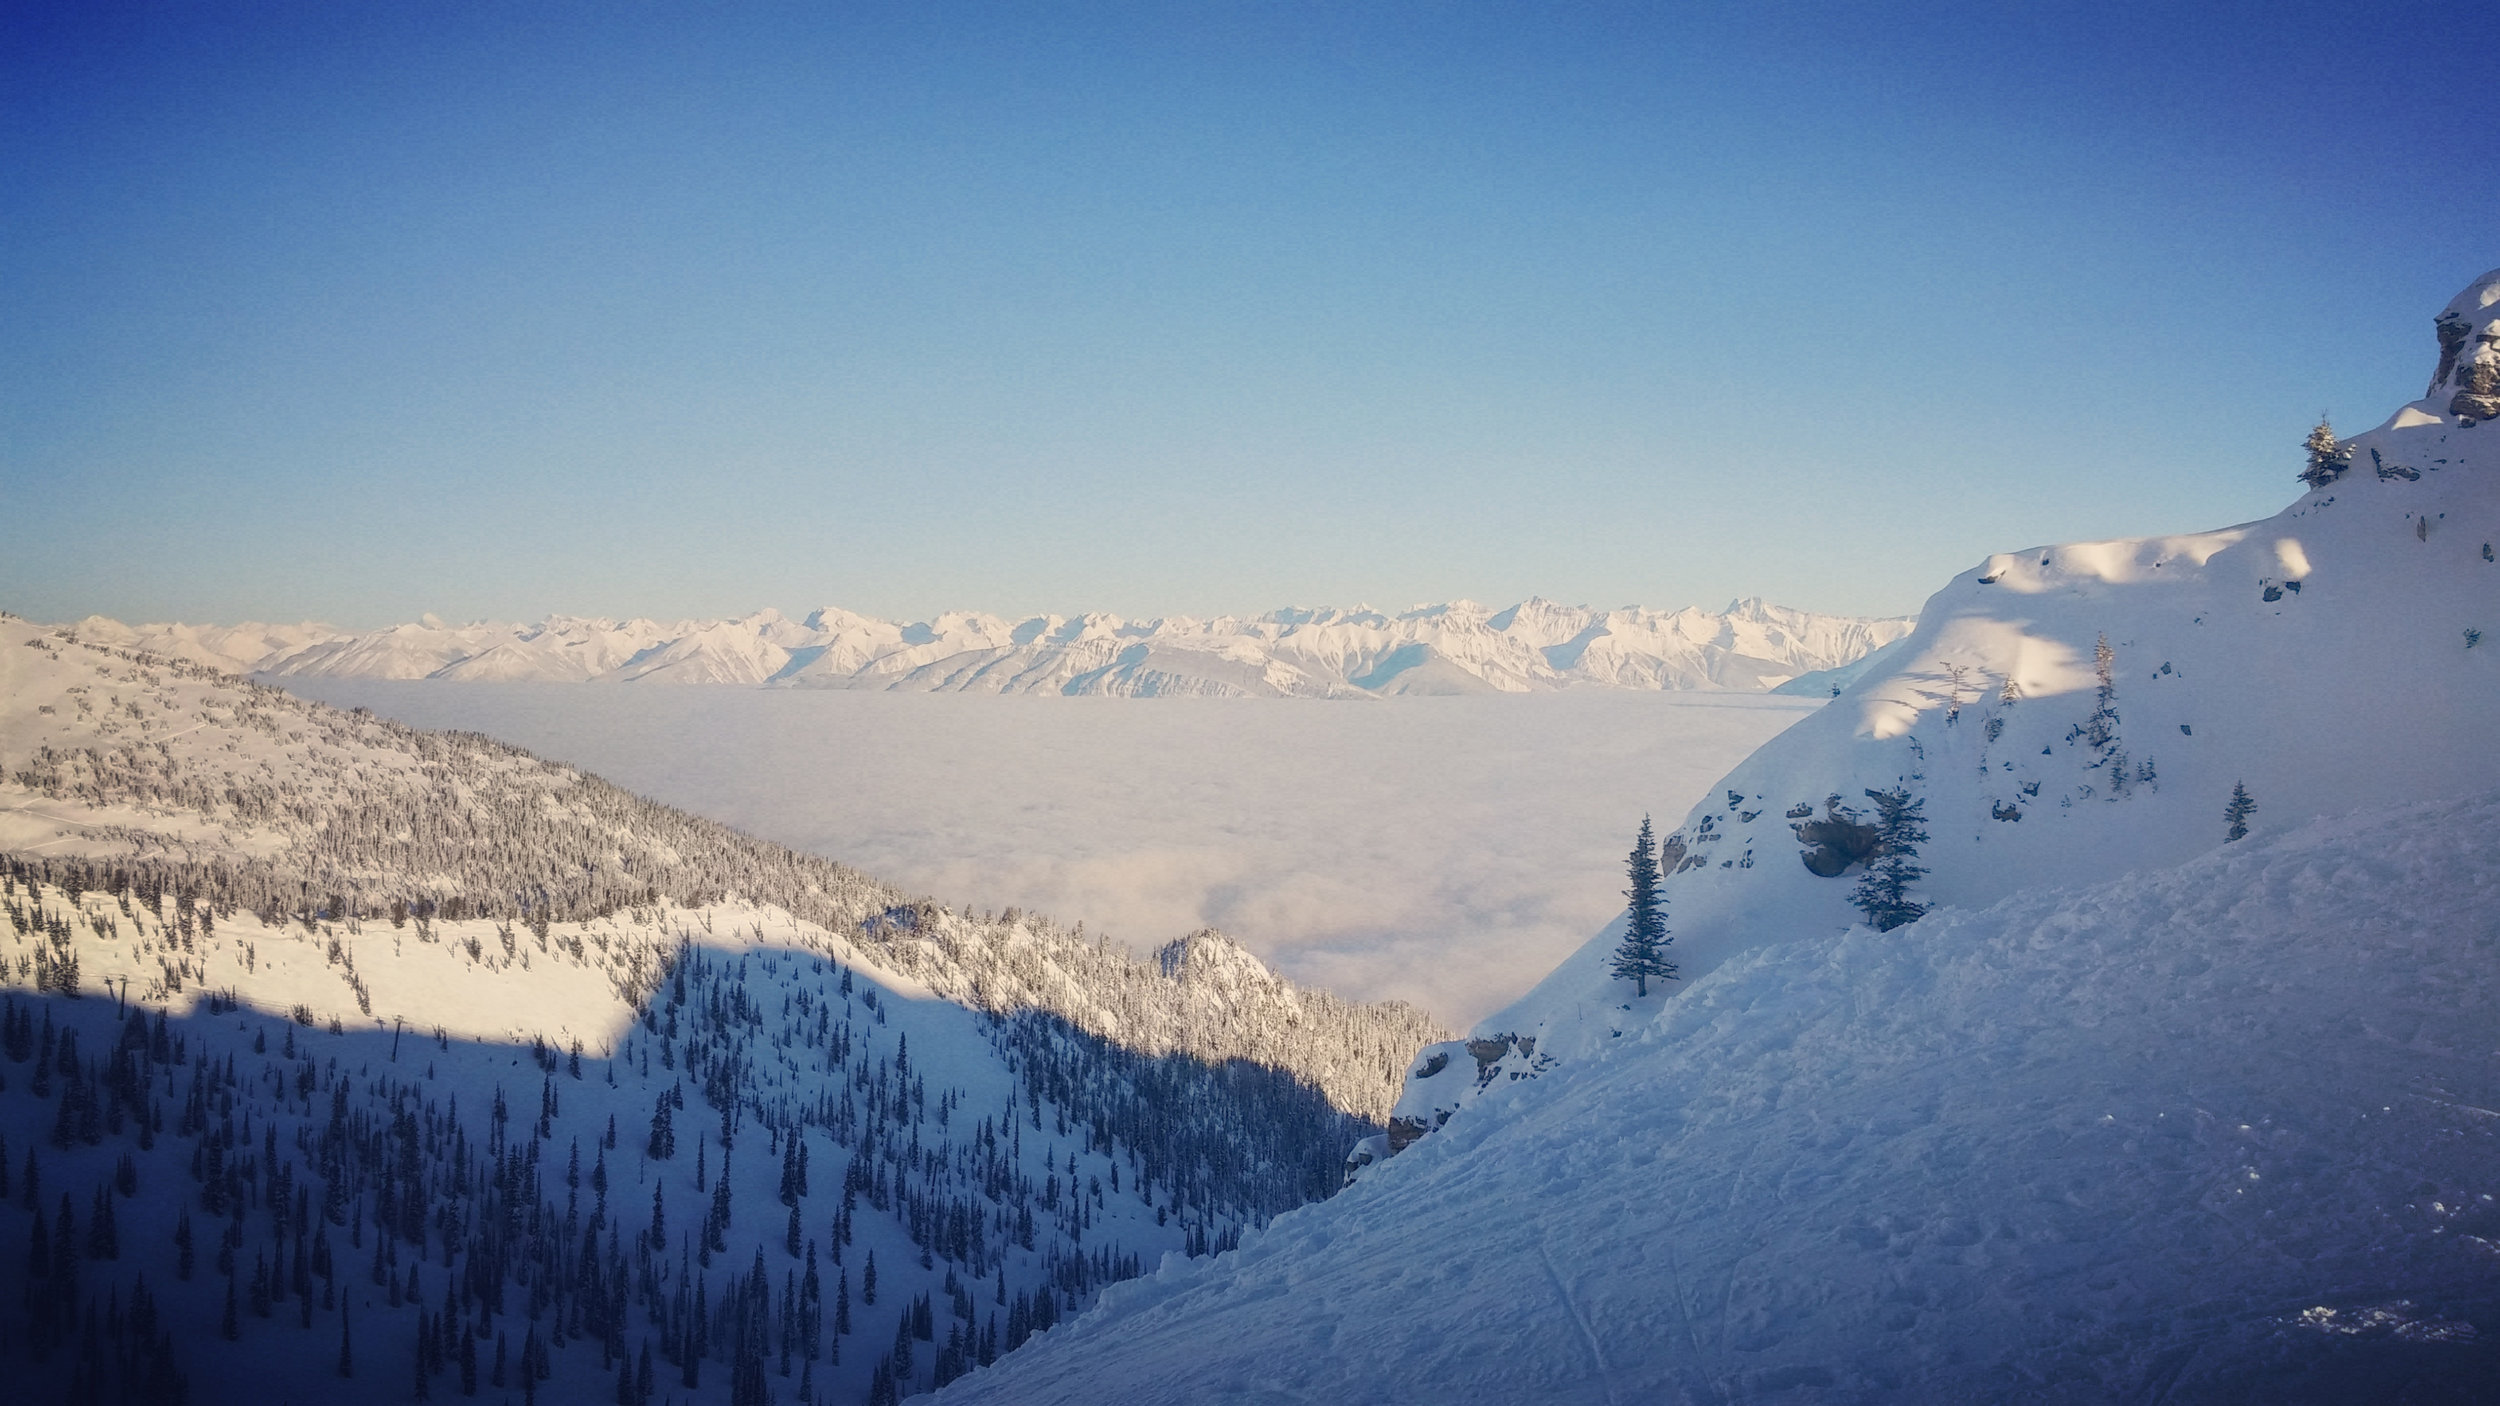 View of the inversion layer from the top of Kicking Horse Resort.